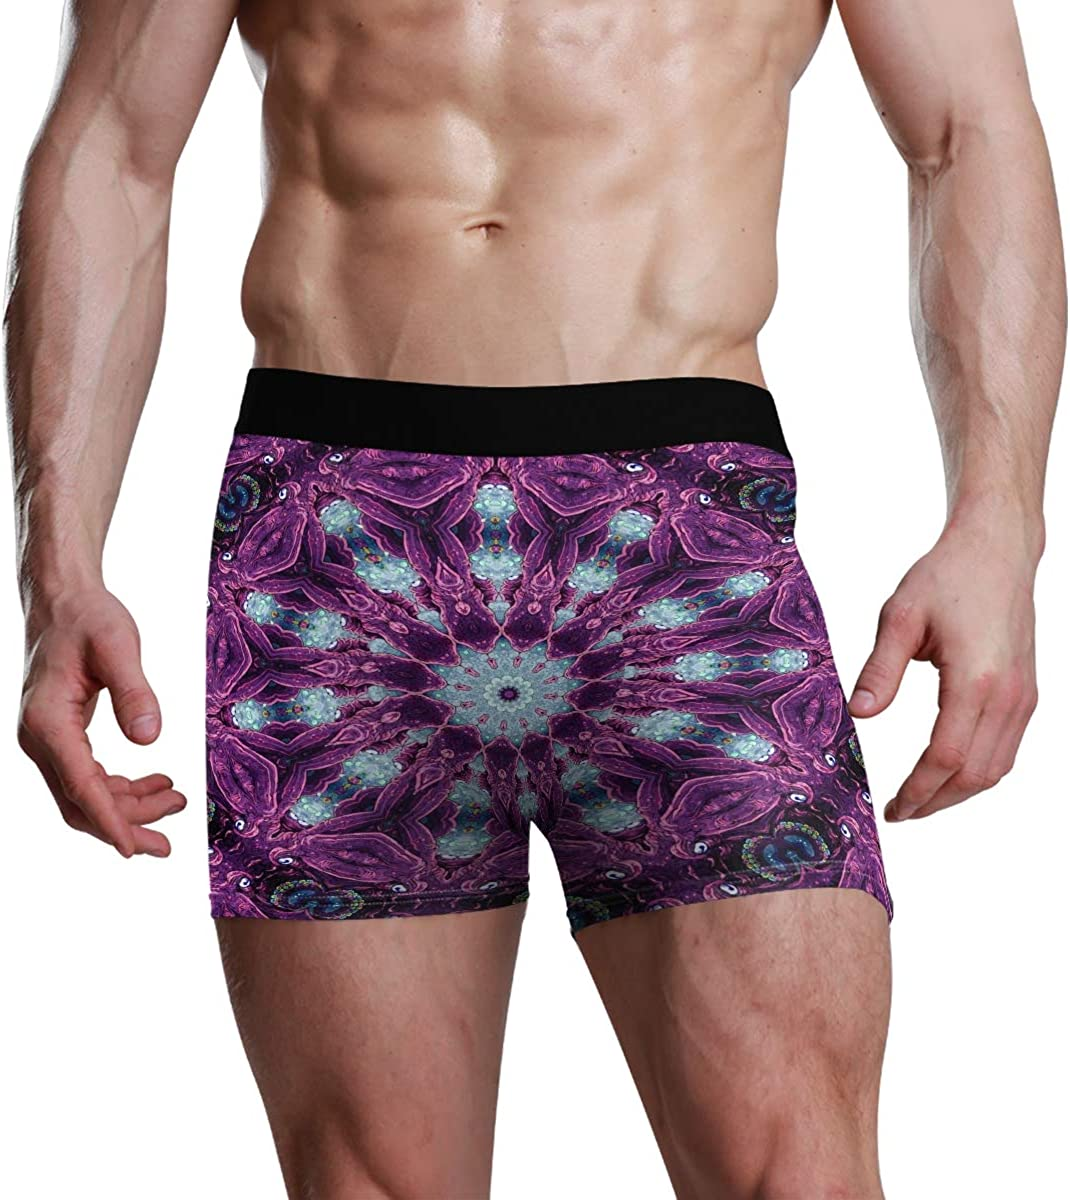 HangWang Mens Boxer Briefs Psychedelic and Trippy Designs Made Low Rise Trunks Underwear Breathable Bikini Boys